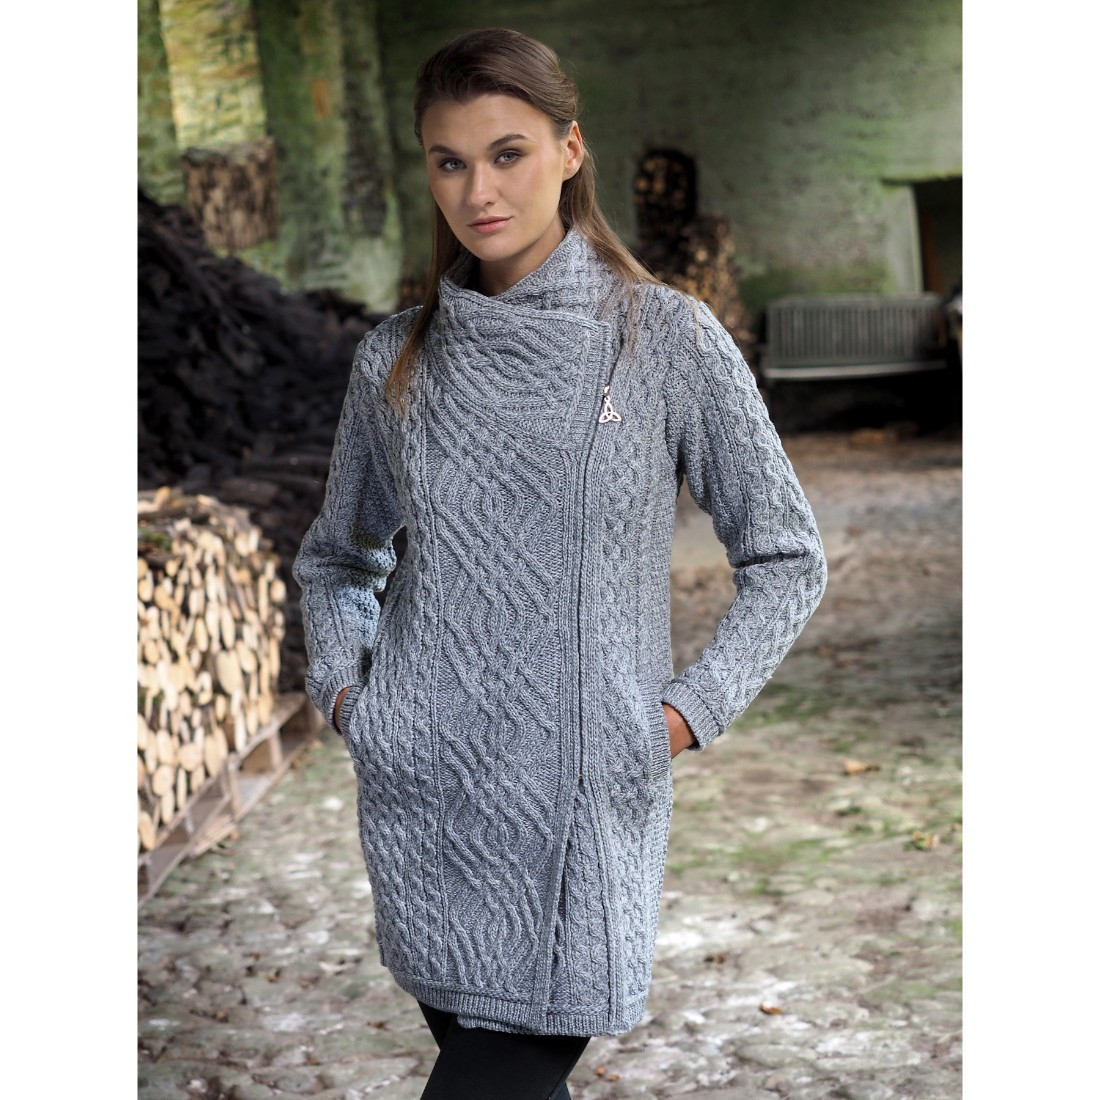 Knitted Coat Patterns Ladies Merino Wool Cable Knit Coat With Side Zip Grey Colour